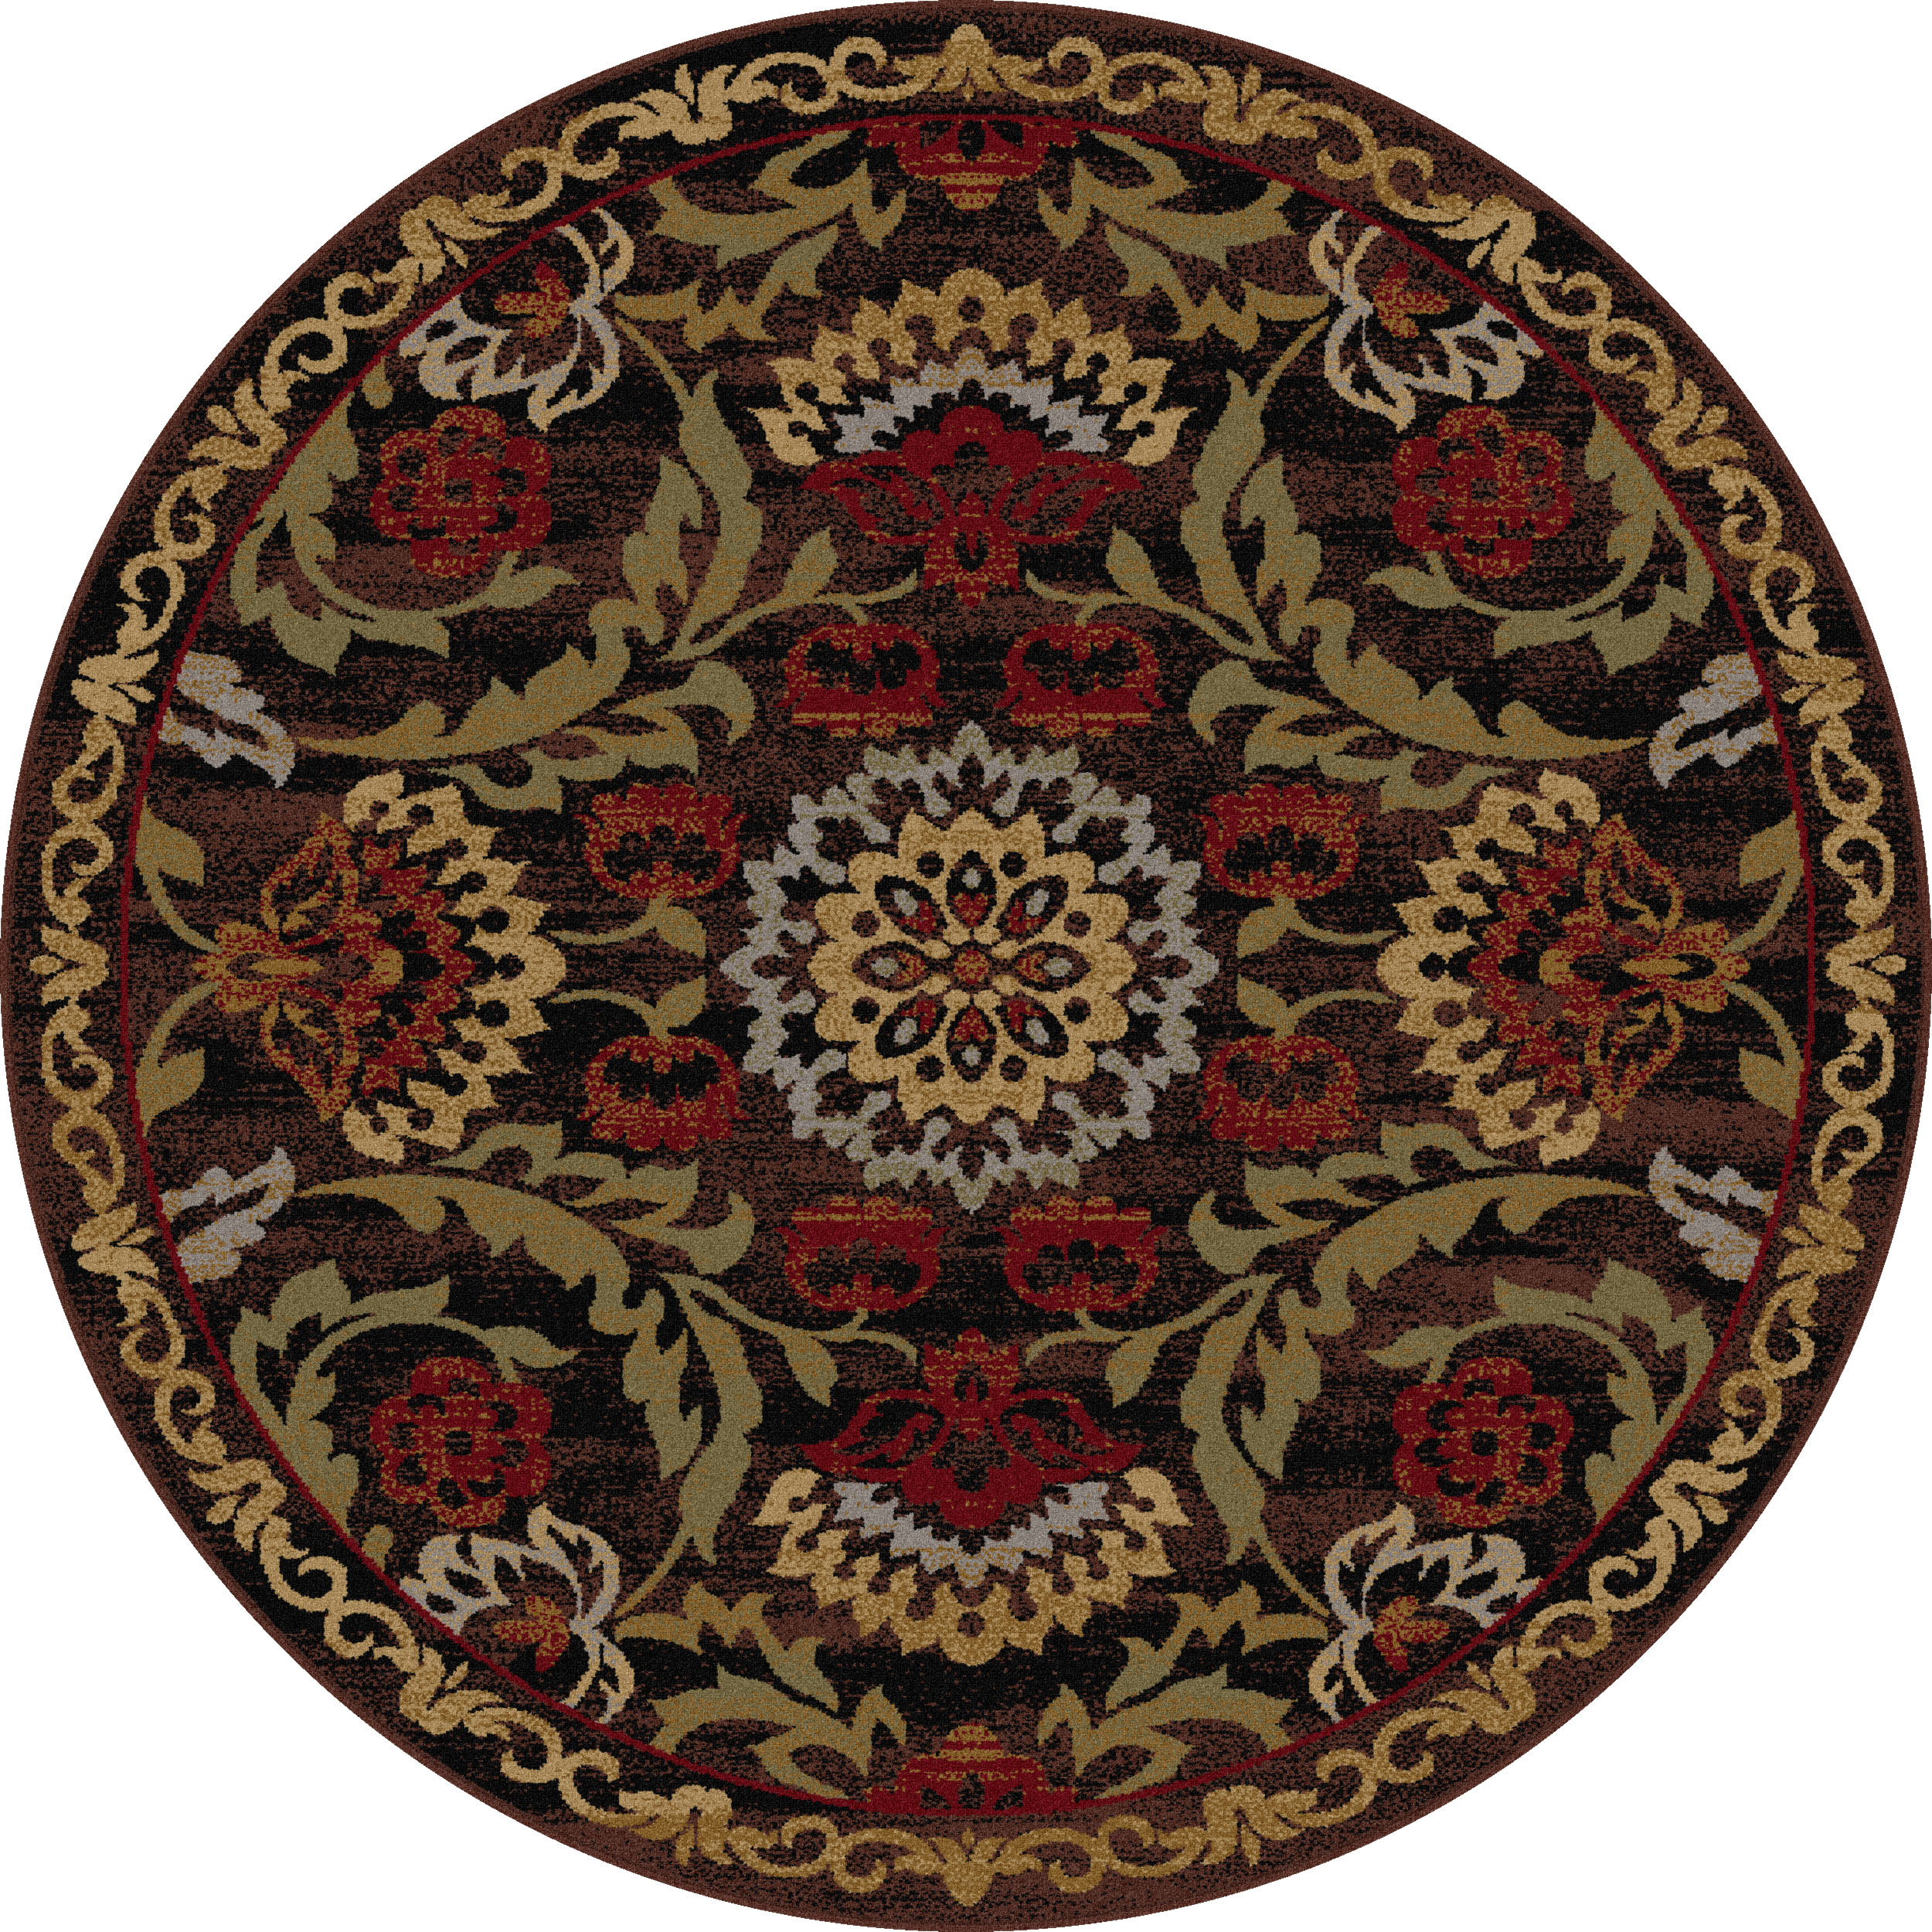 Round Rug Kmart Tayse Rugs Impressions Harlow Floral Area Rug 5 393